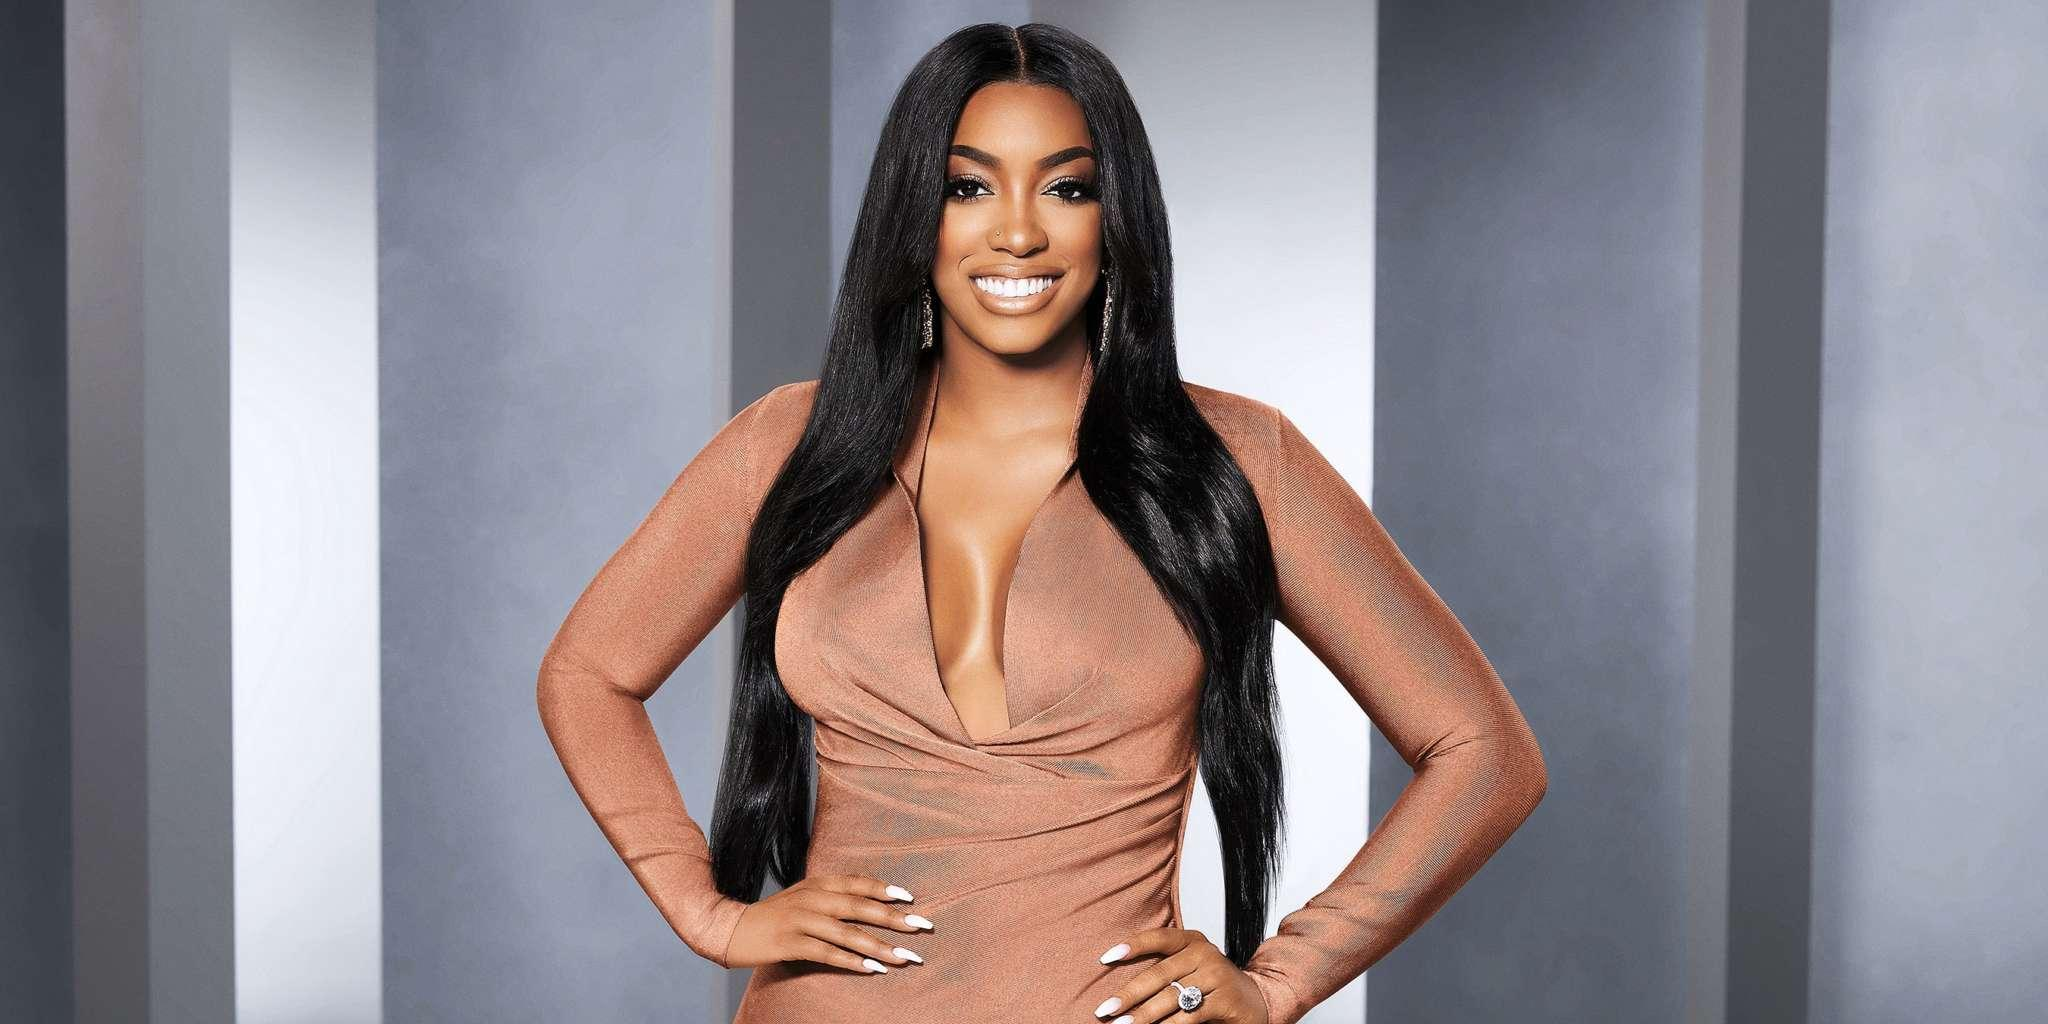 Andy Cohen Says Porsha Williams Was Almost Fired From RHOA In Her First Season - Here's How She Saved Her Job!